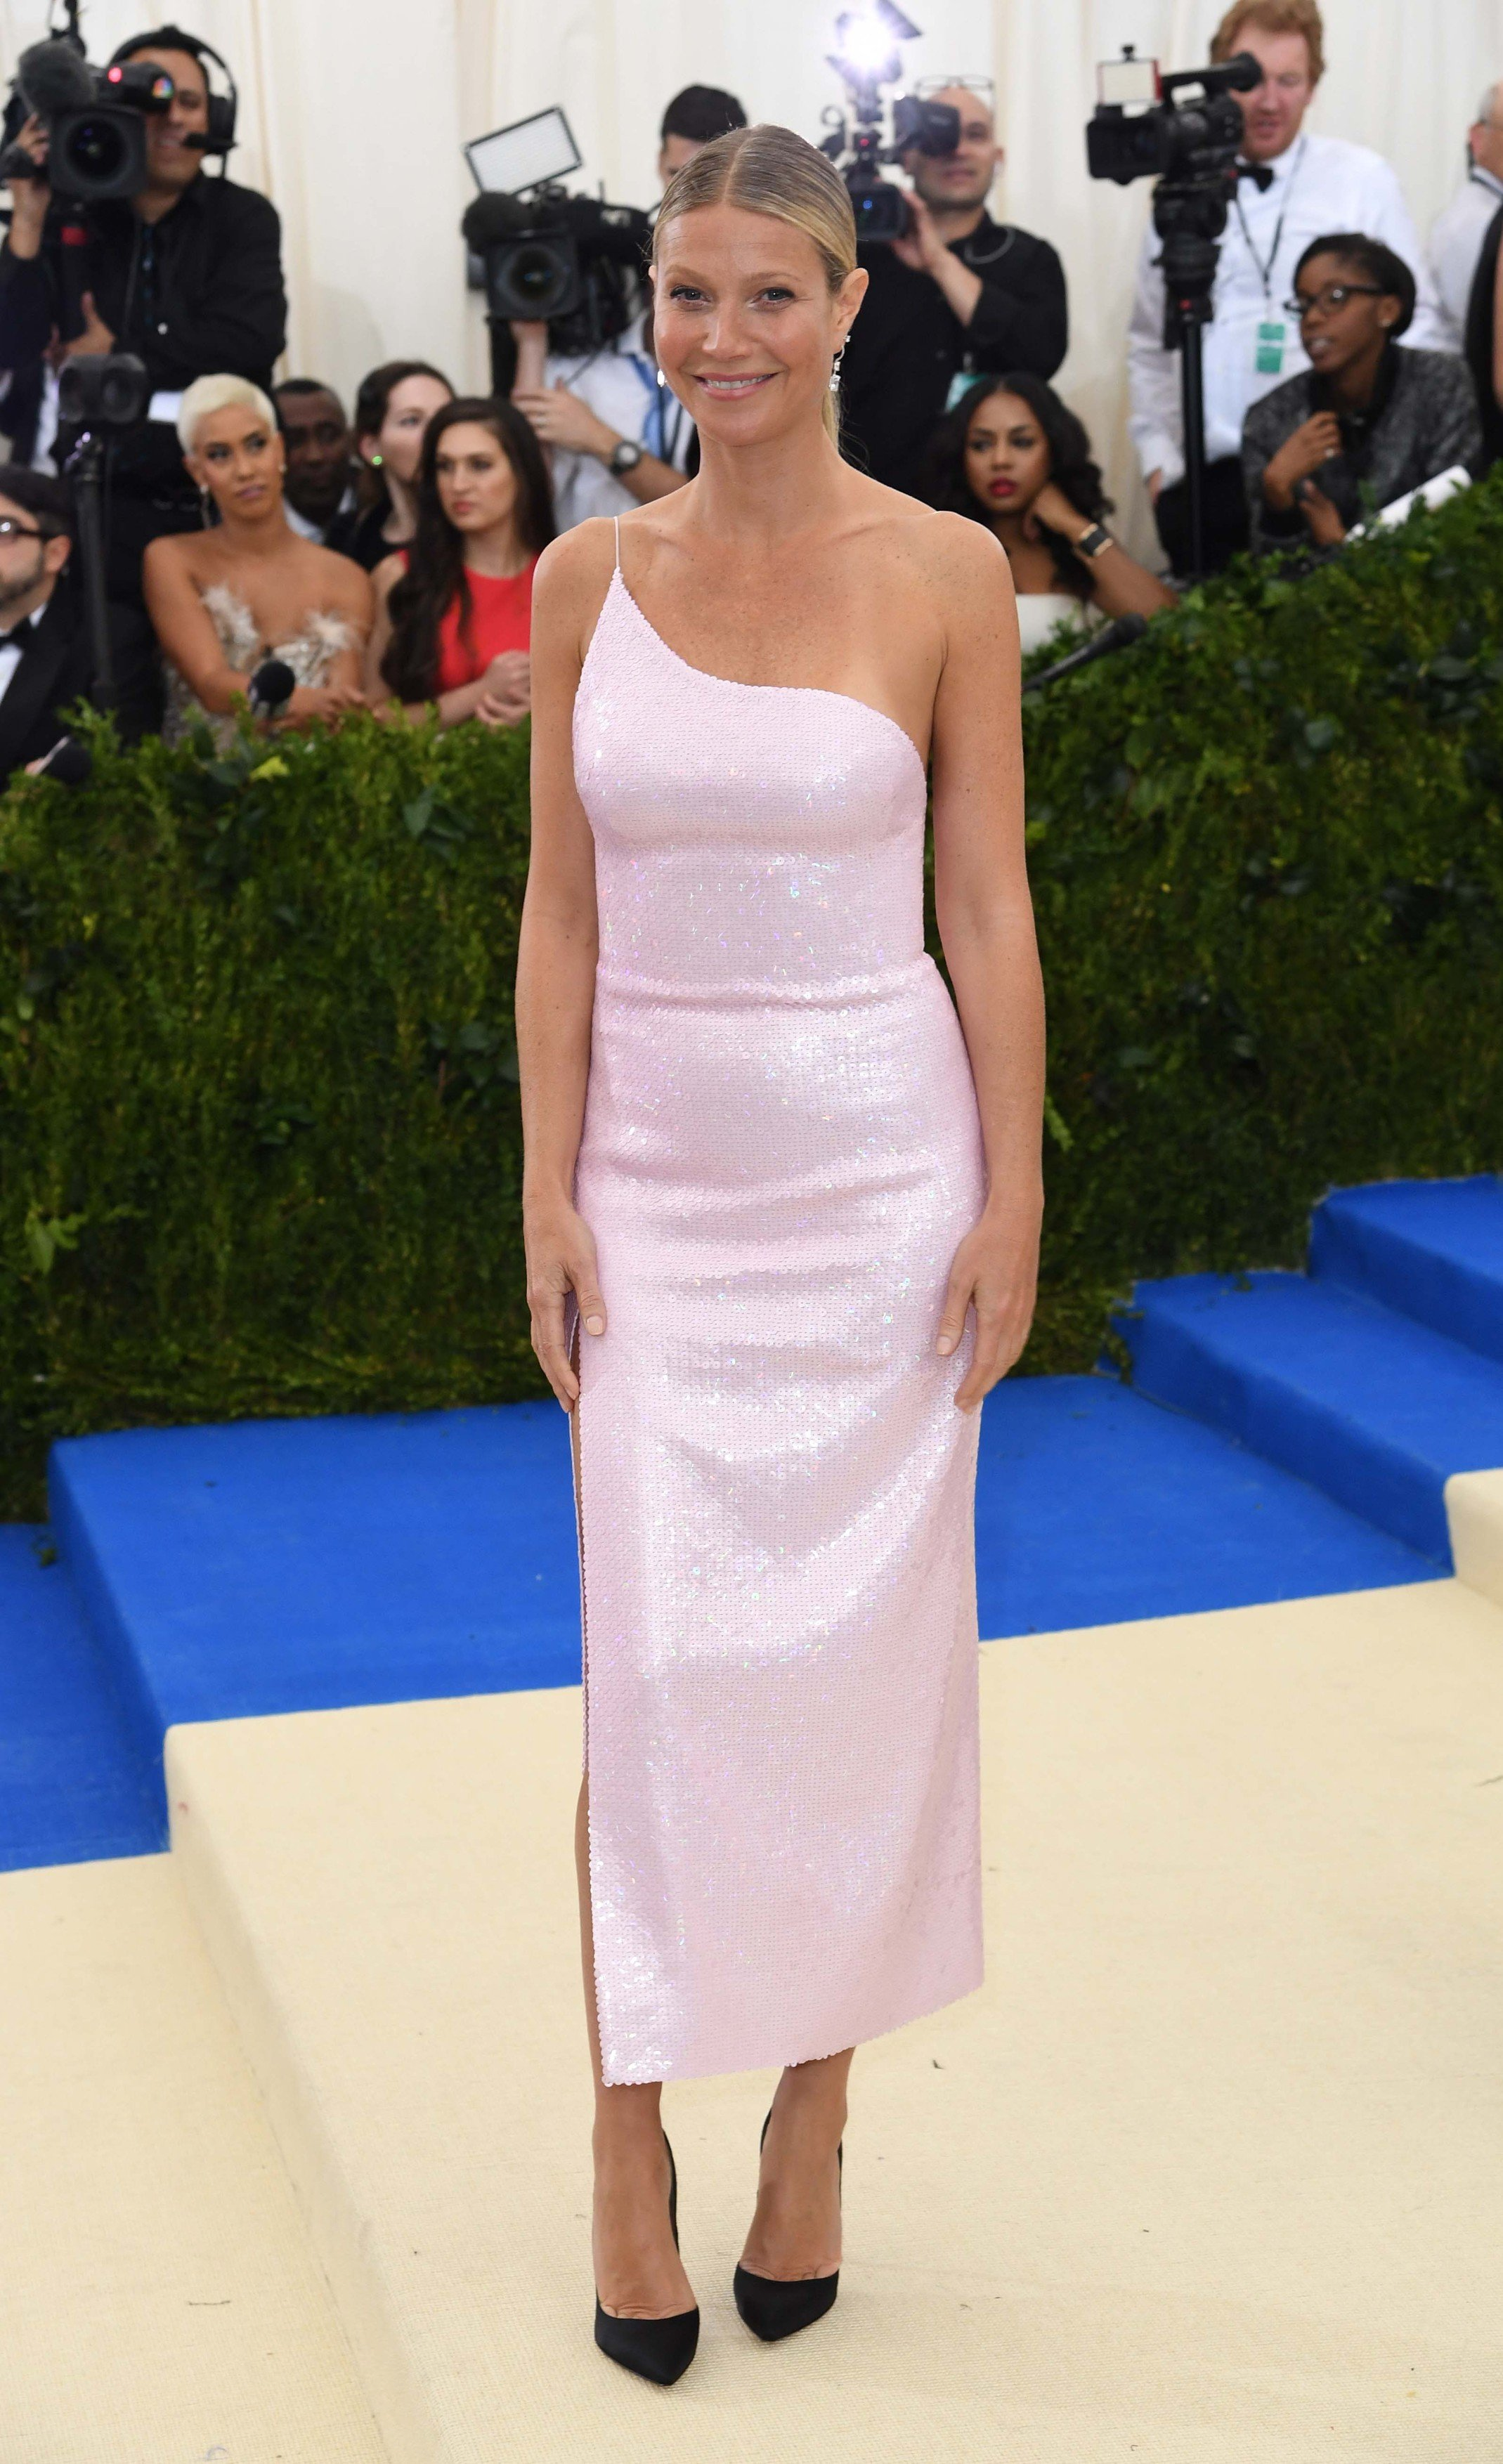 Gwyneth Paltrow attending The Metropolitan Museum of Art Costume Institute Benefit Gala 2017, in New York City, USA., Image: 330867910, License: Rights-managed, Restrictions: , Model Release: no, Credit line: Profimedia, Press Association